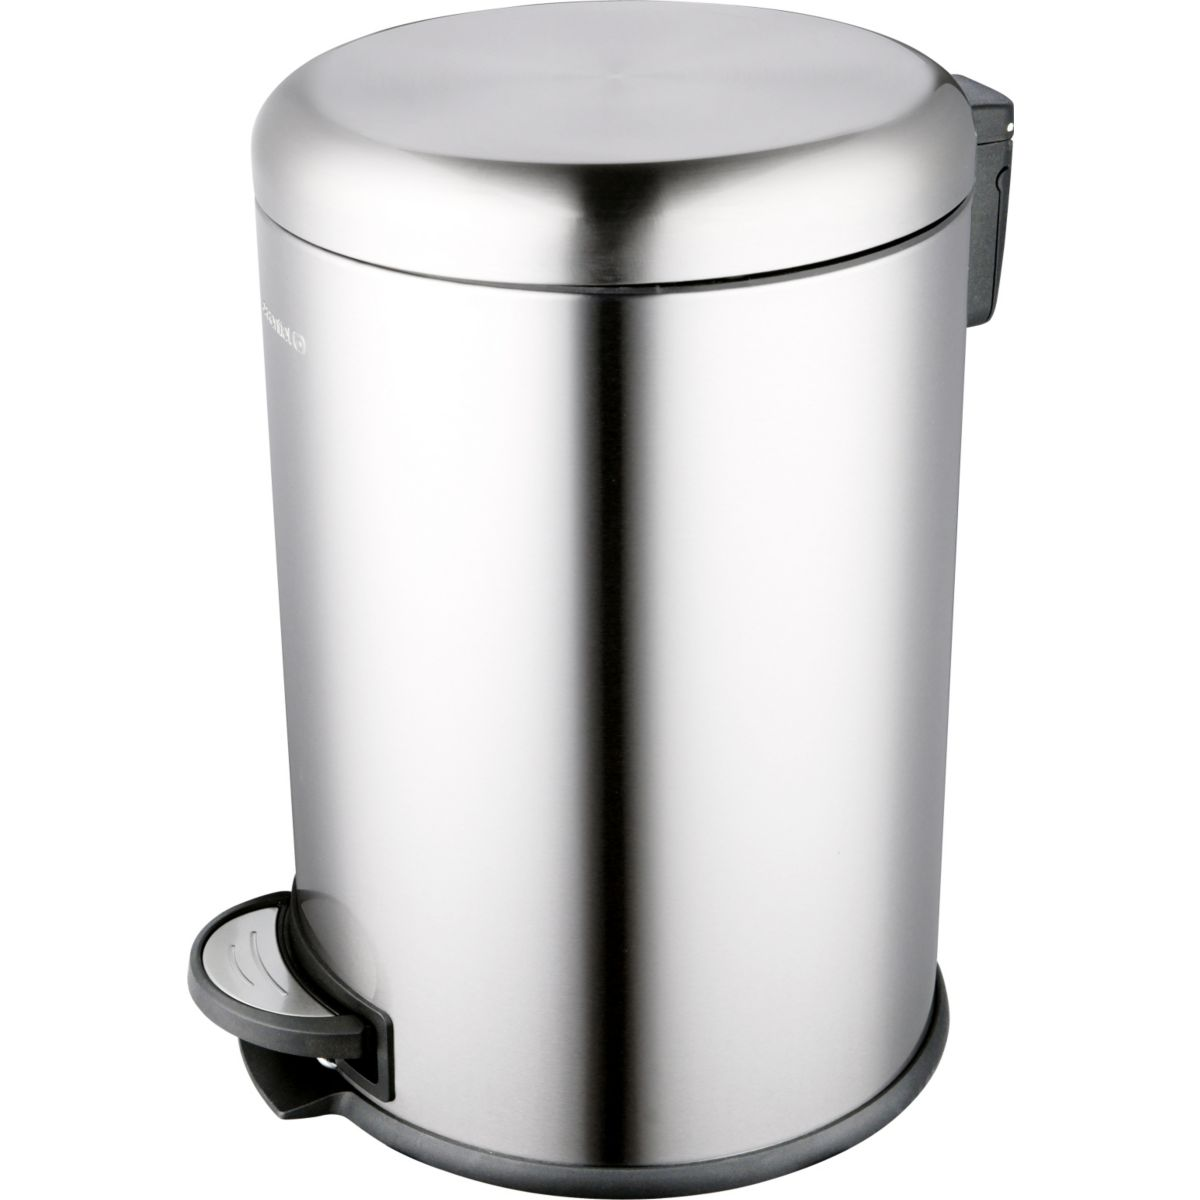 Poubelle ESSENTIELB ronde 20L Inox à péd (photo)